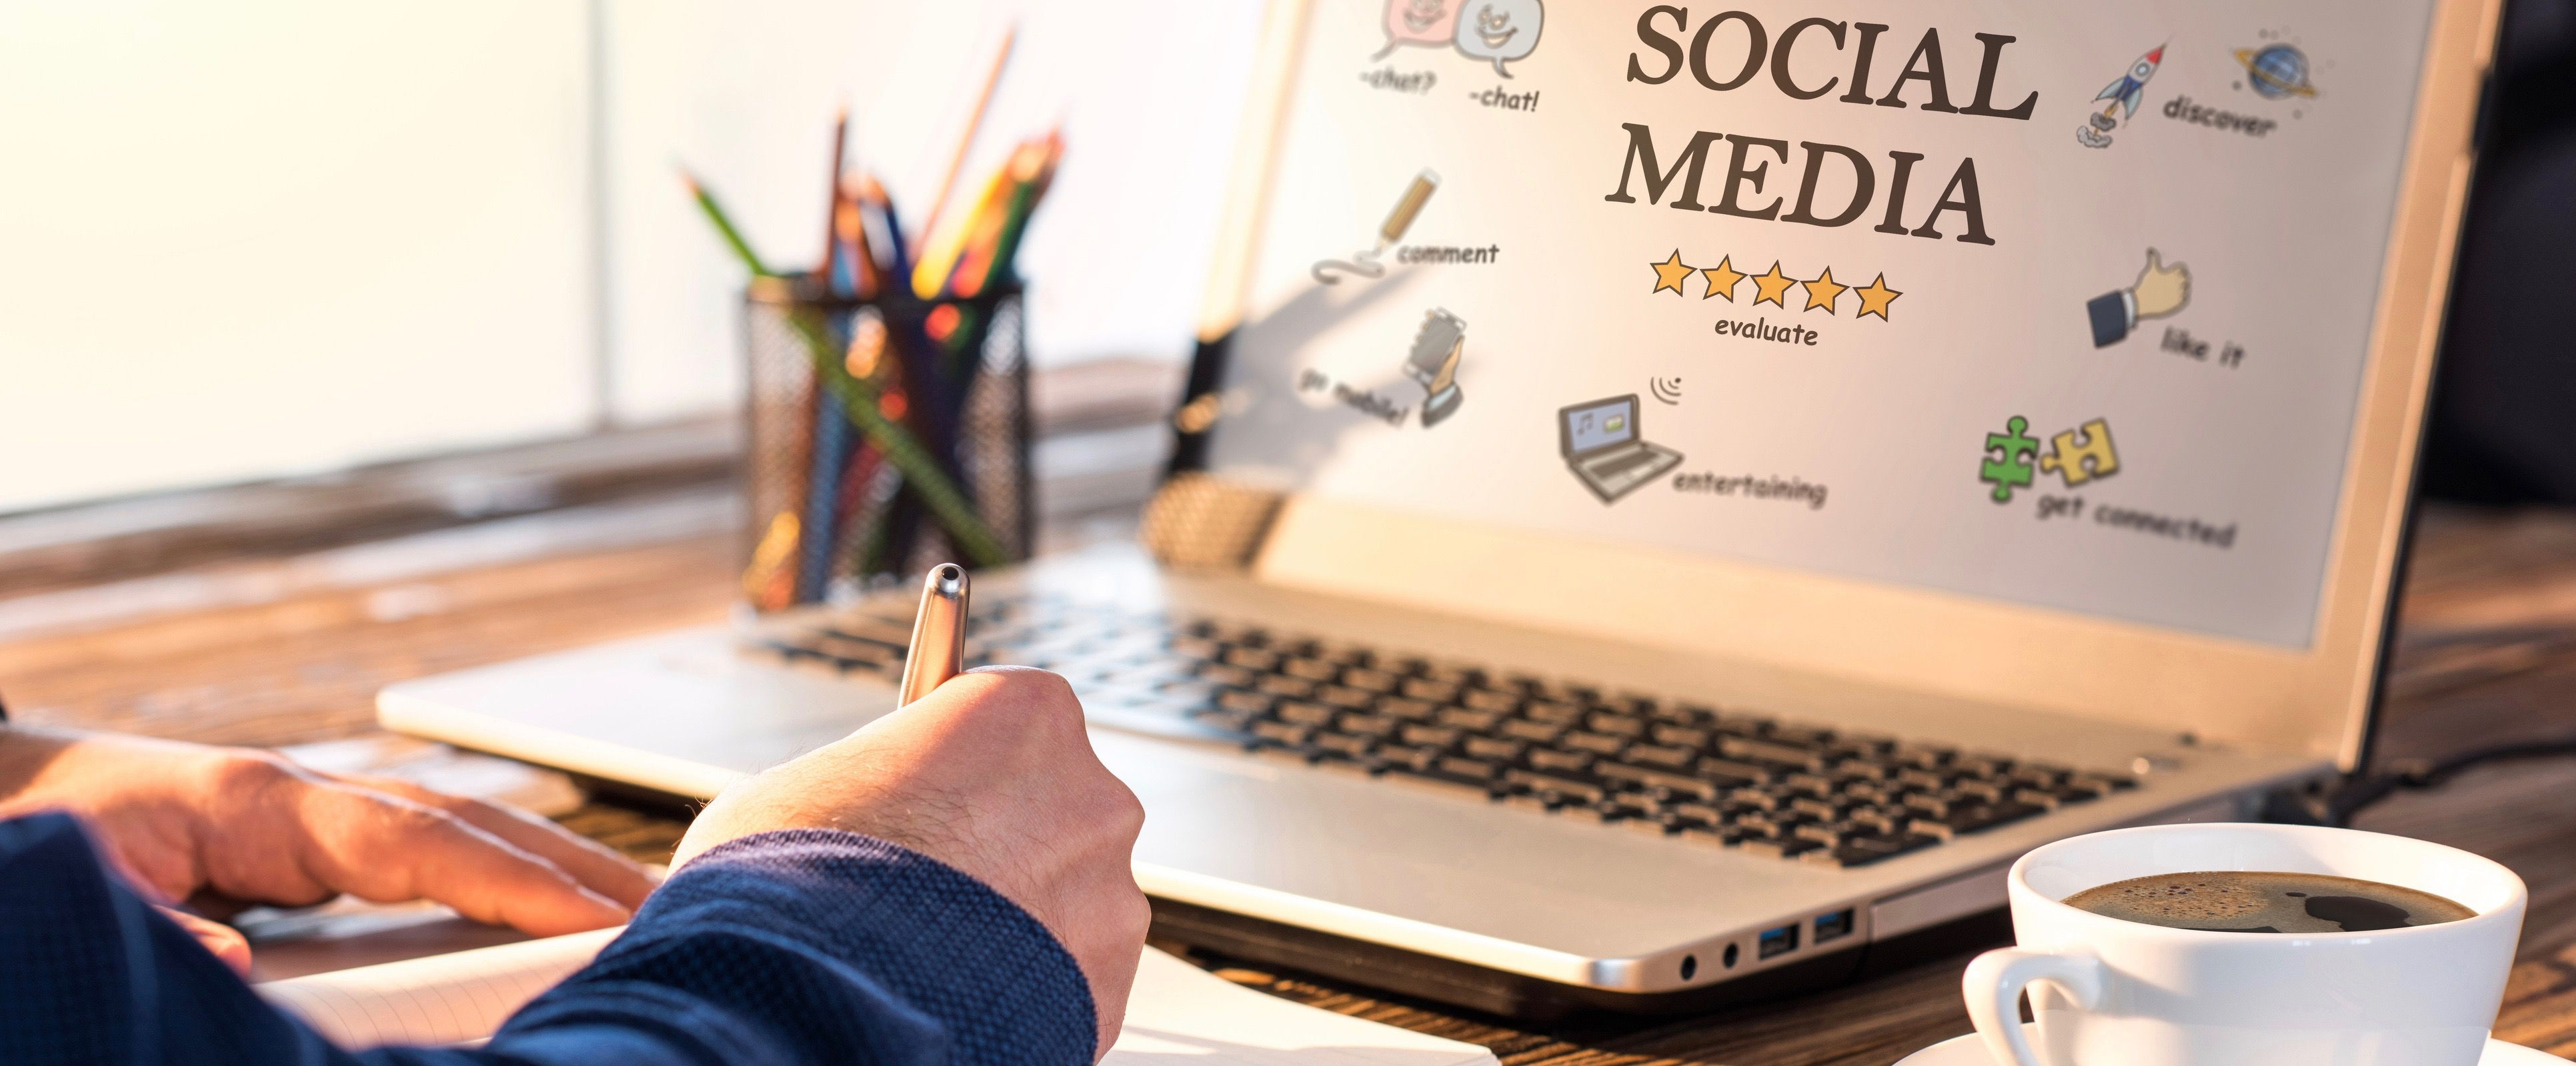 Social Media Copywriting: How to Compose Text for 5 Different Channels [Bookmarkable]